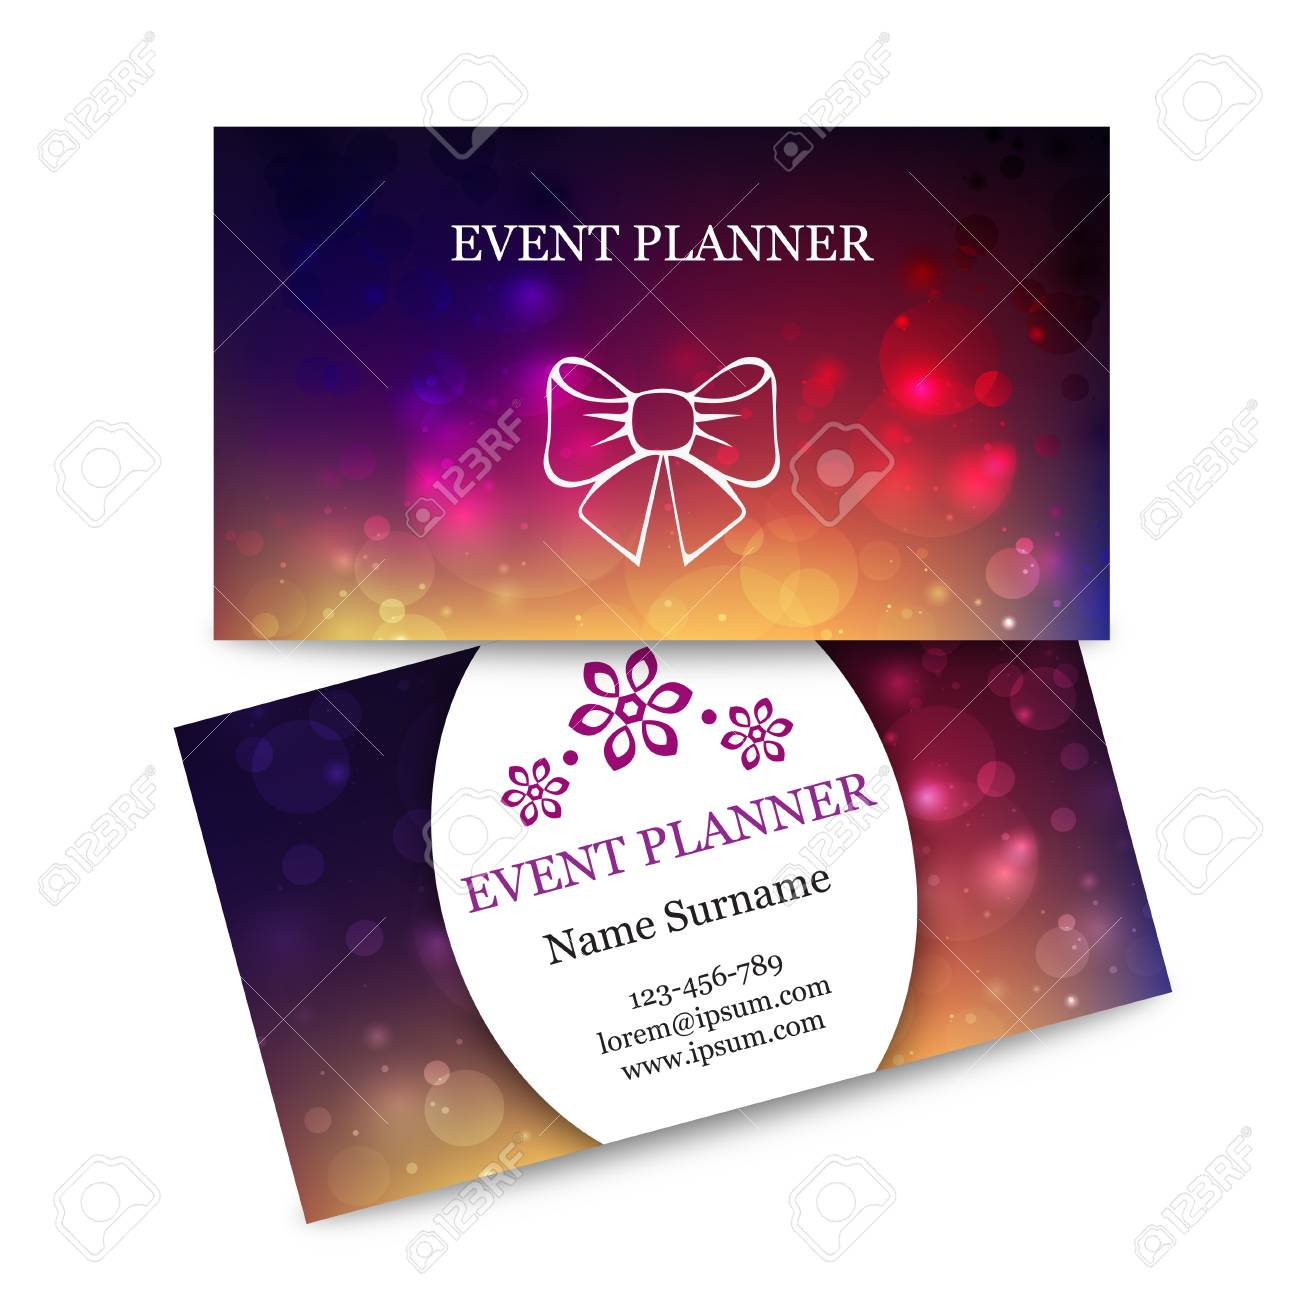 Template colorful business cards for event planner abstract template colorful business cards for event planner abstract magic bokeh background effect blurred light colourmoves